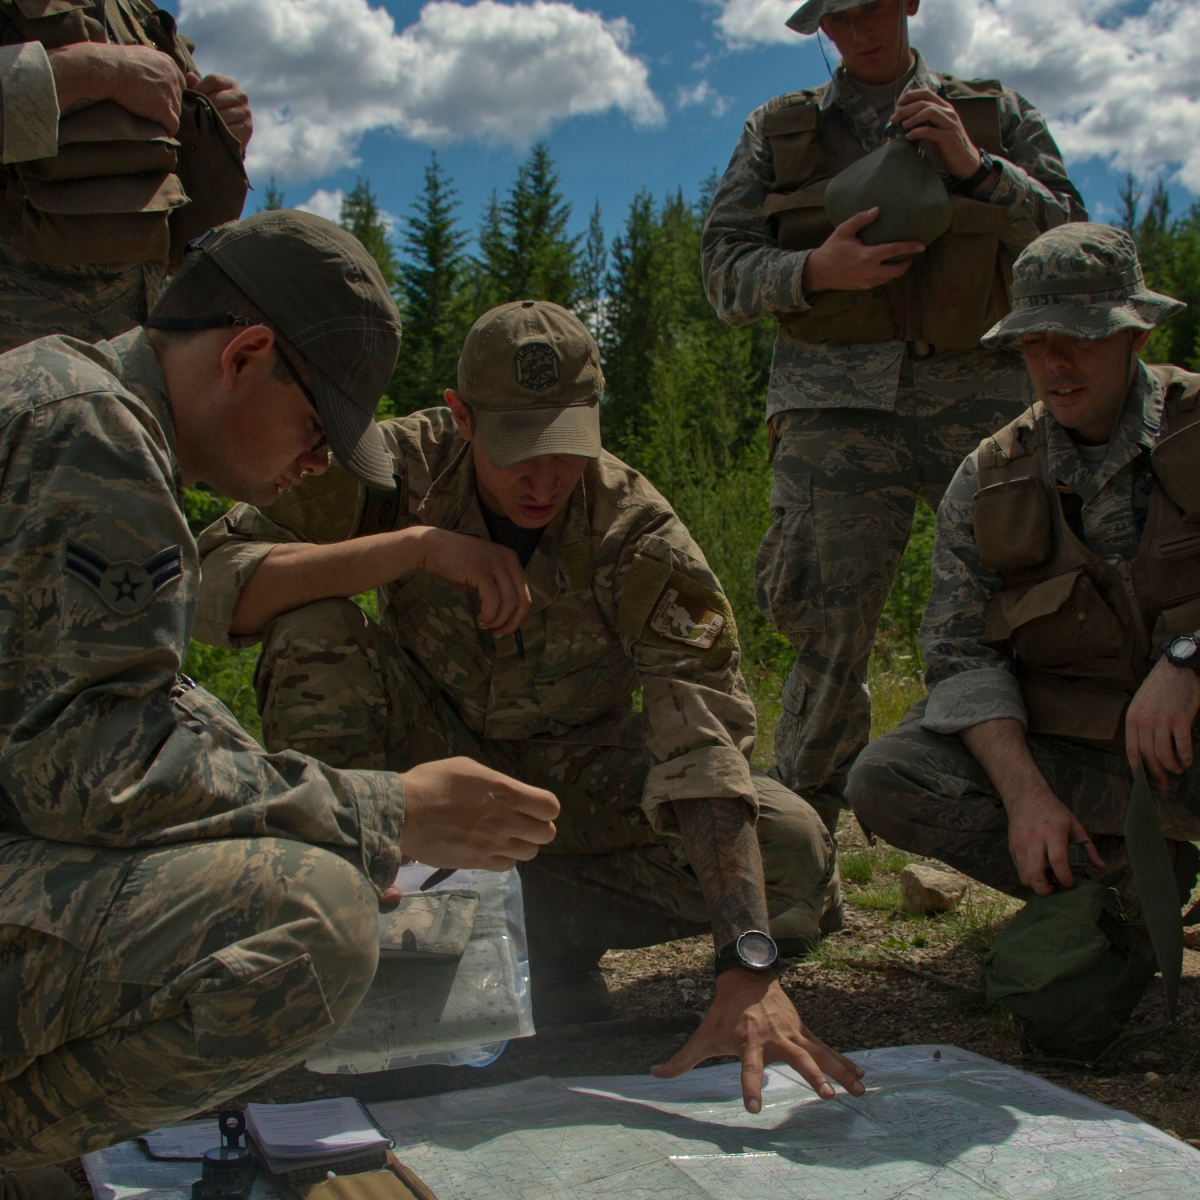 Inside Air Force SERE Specialist Training, America's